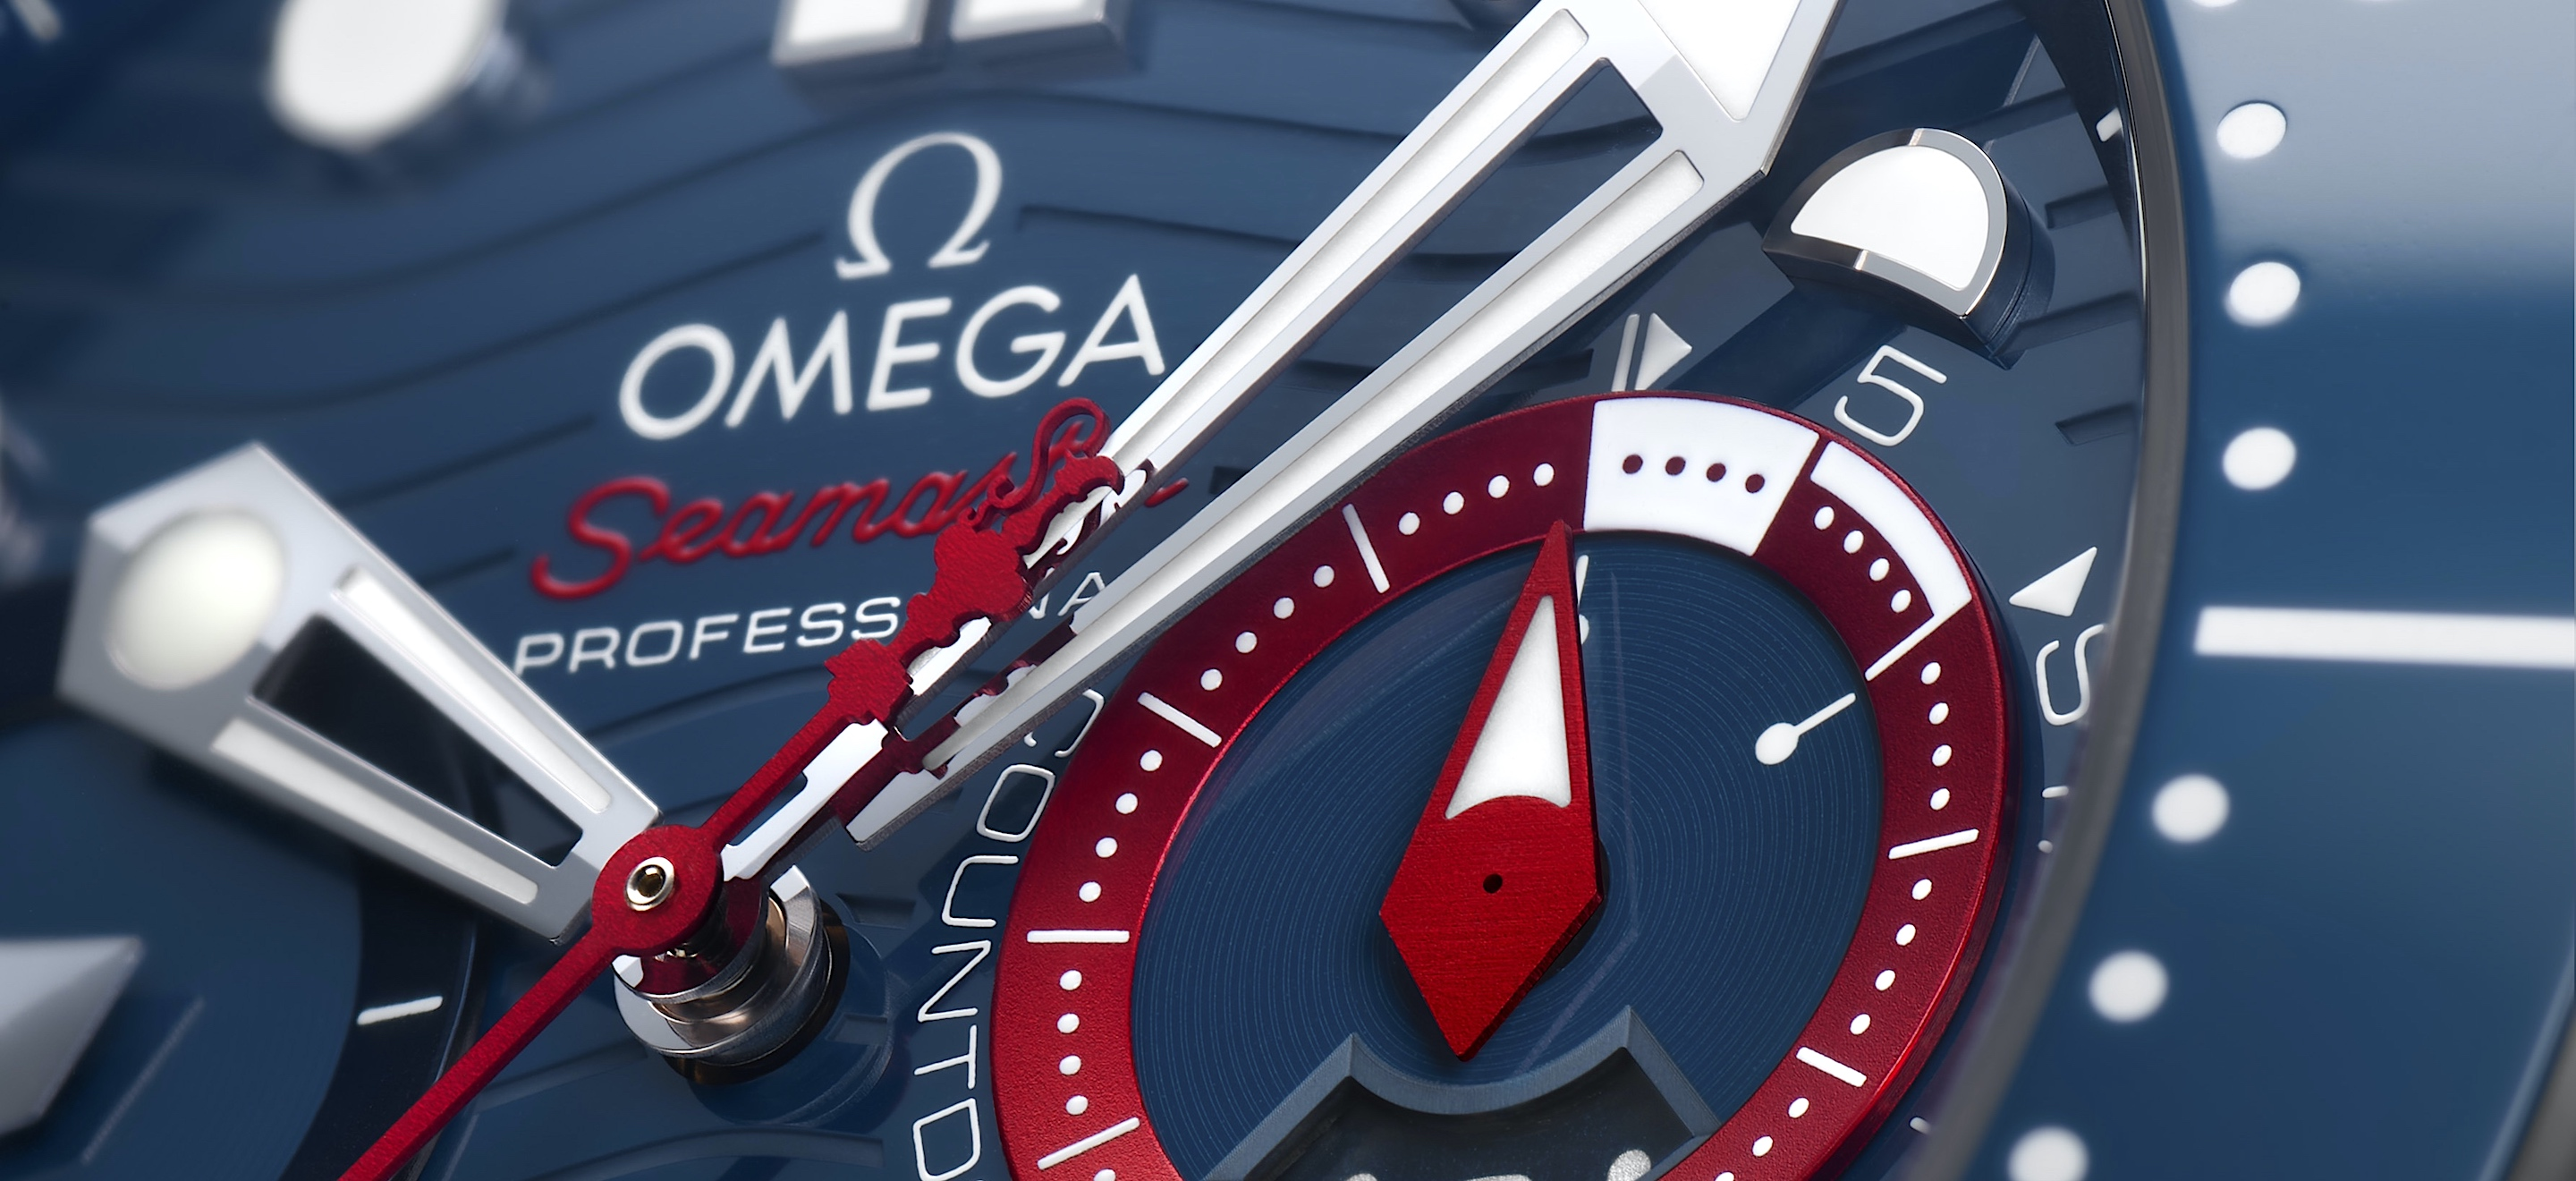 Omega Seamaster Diver 300M Chronograph Americas Cup - cover